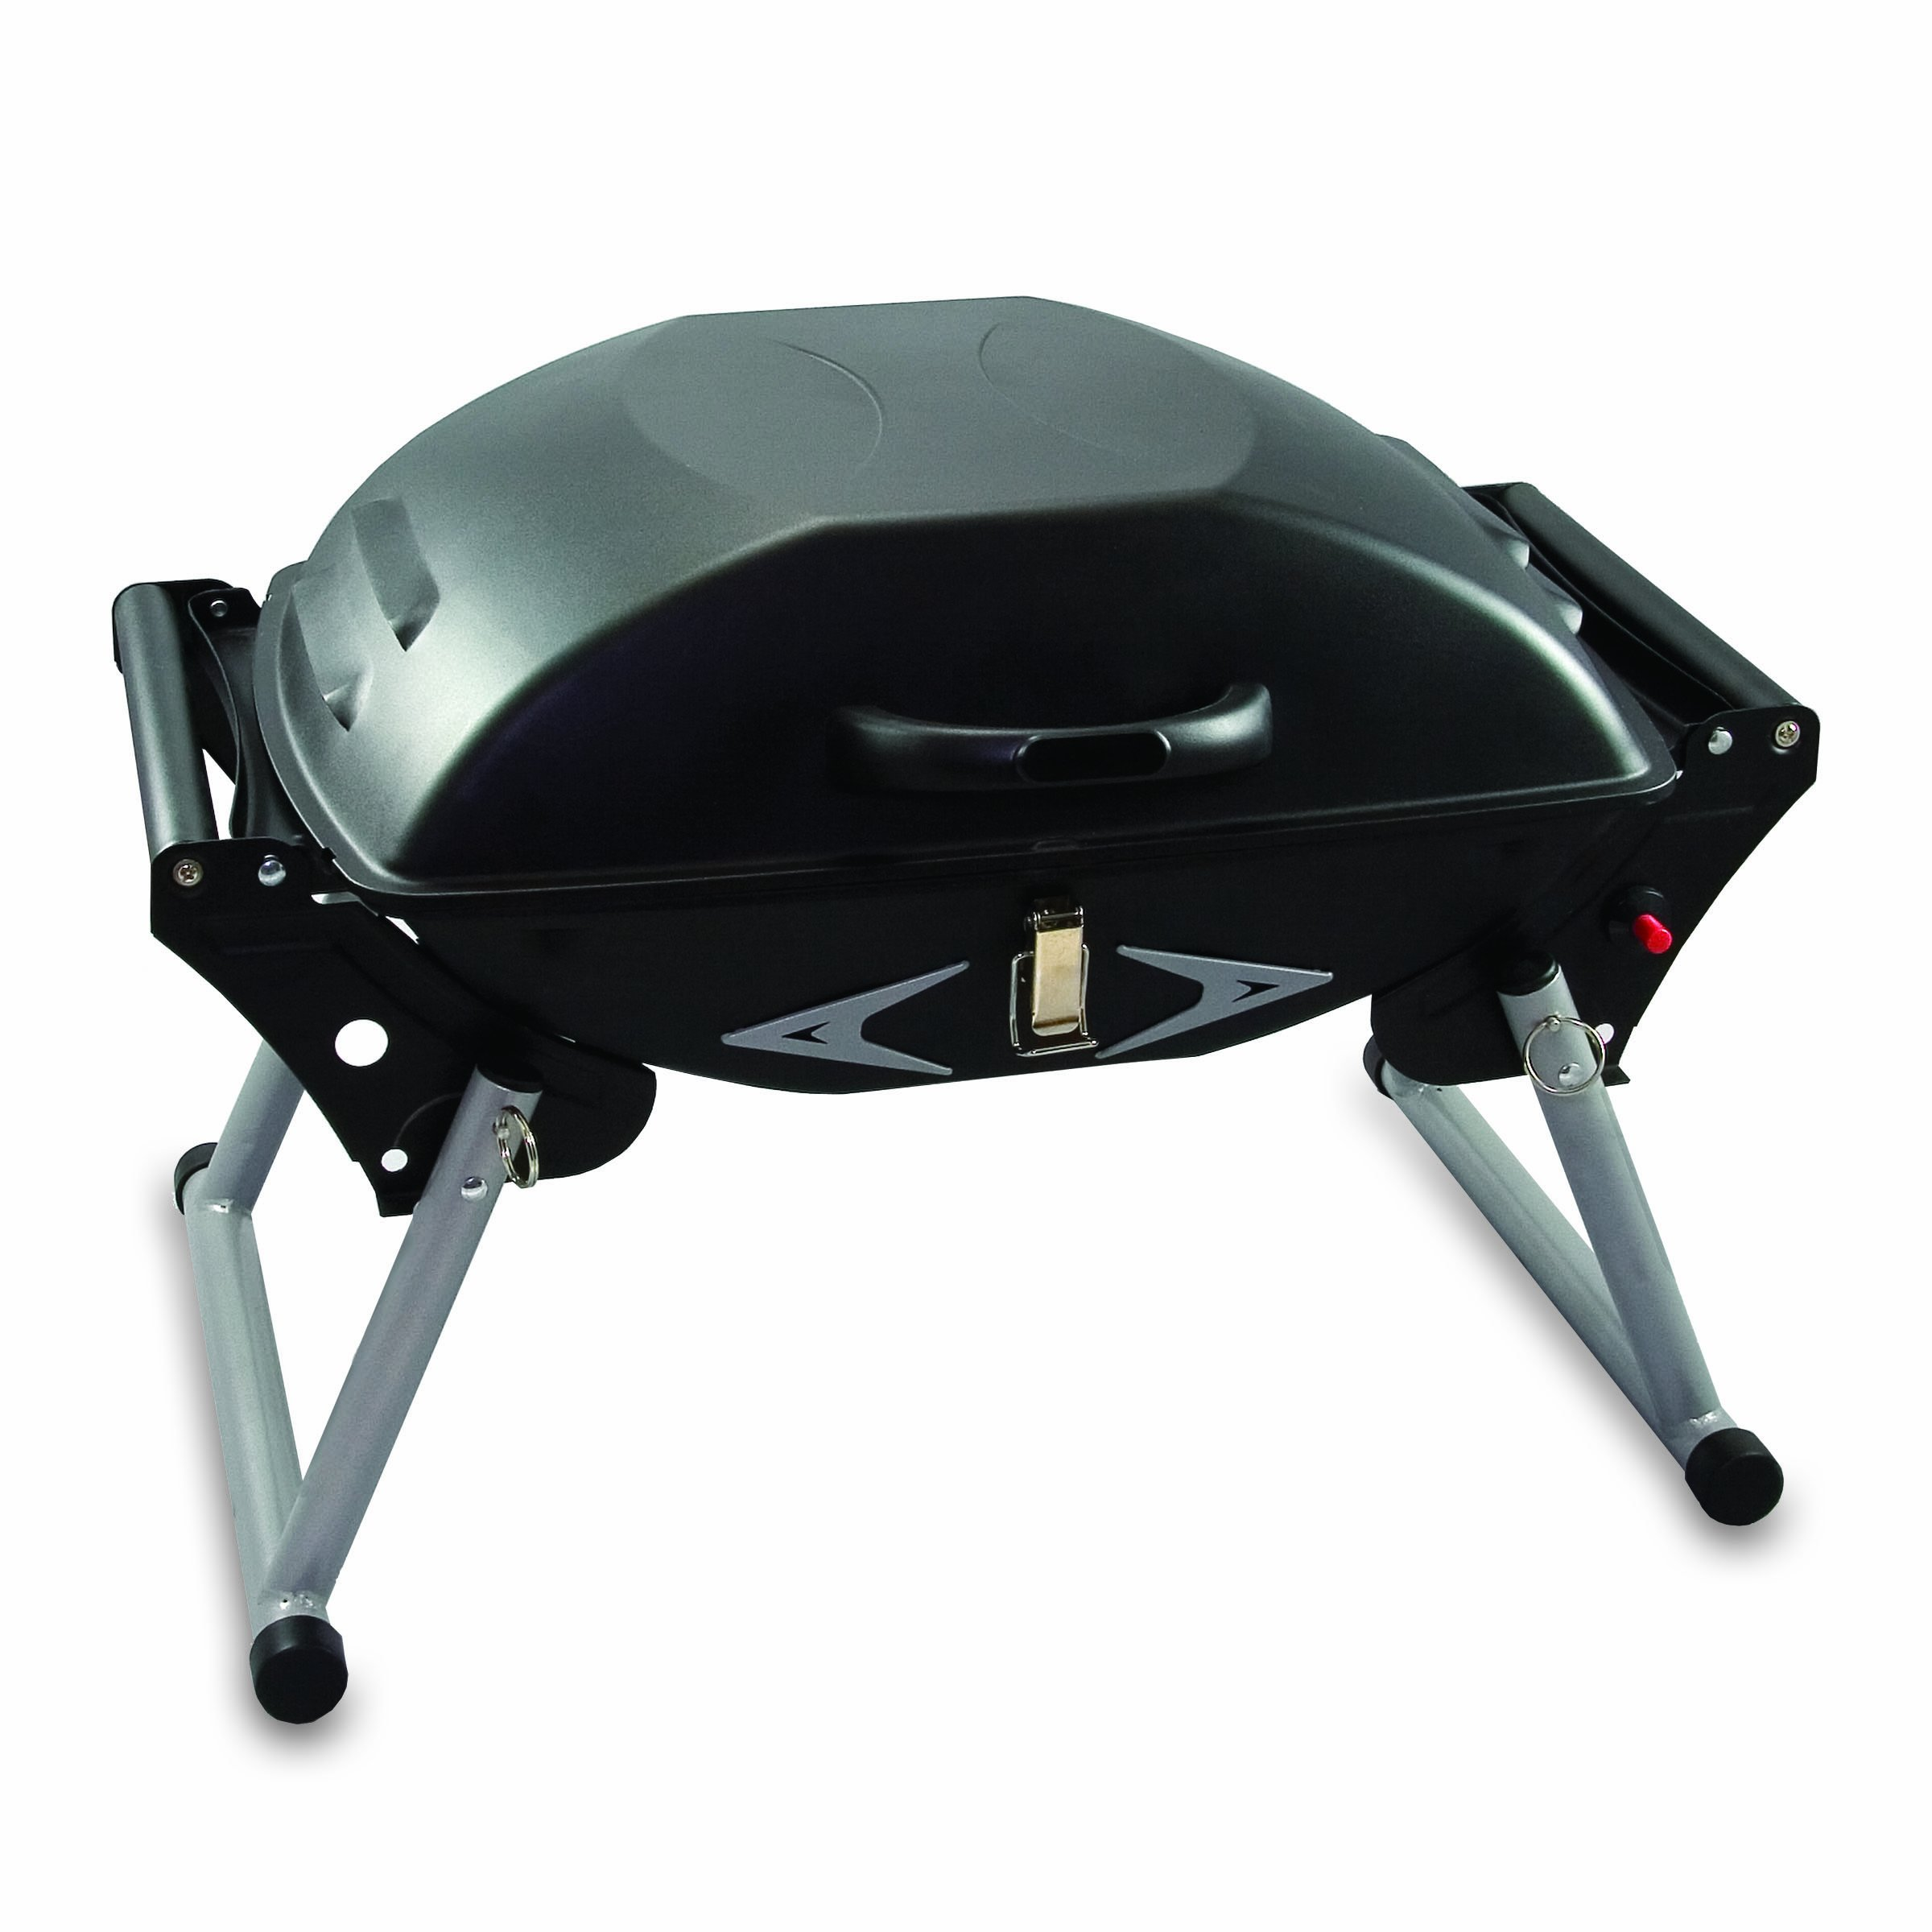 Picnic Time Portagrillo Portable Propane BBQ Grill by ONIVA - a Picnic Time brand (Image #3)